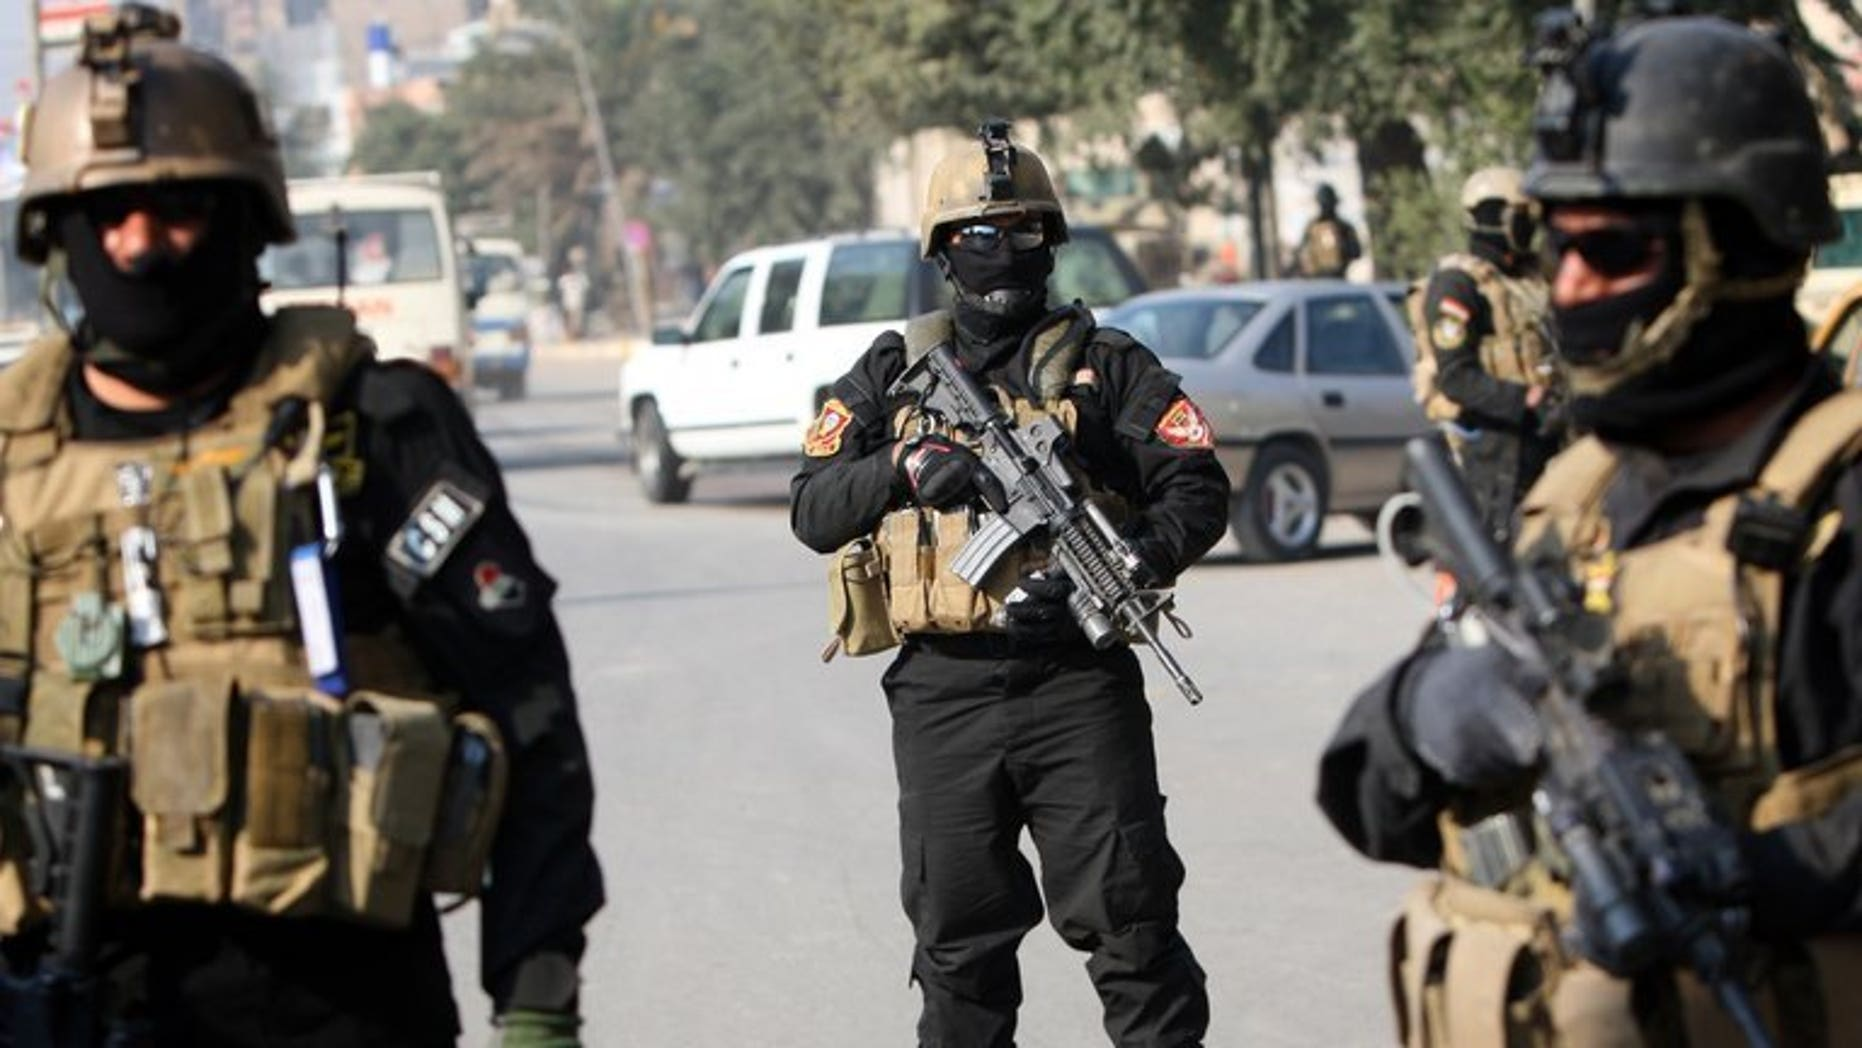 Iraqi anti-terror police guard a checkpoint in Baghdad, on January 6, 2011. Militants have attacked a police station in north Iraq with mortar rounds and automatic weapons, killing nine police, an officer and a doctor have told AFP.